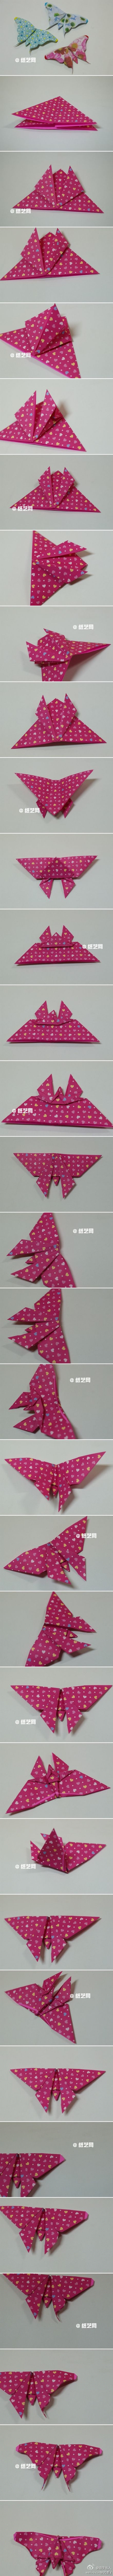 Origami Butterfly #Origami #Paper #Butterfly #Craft